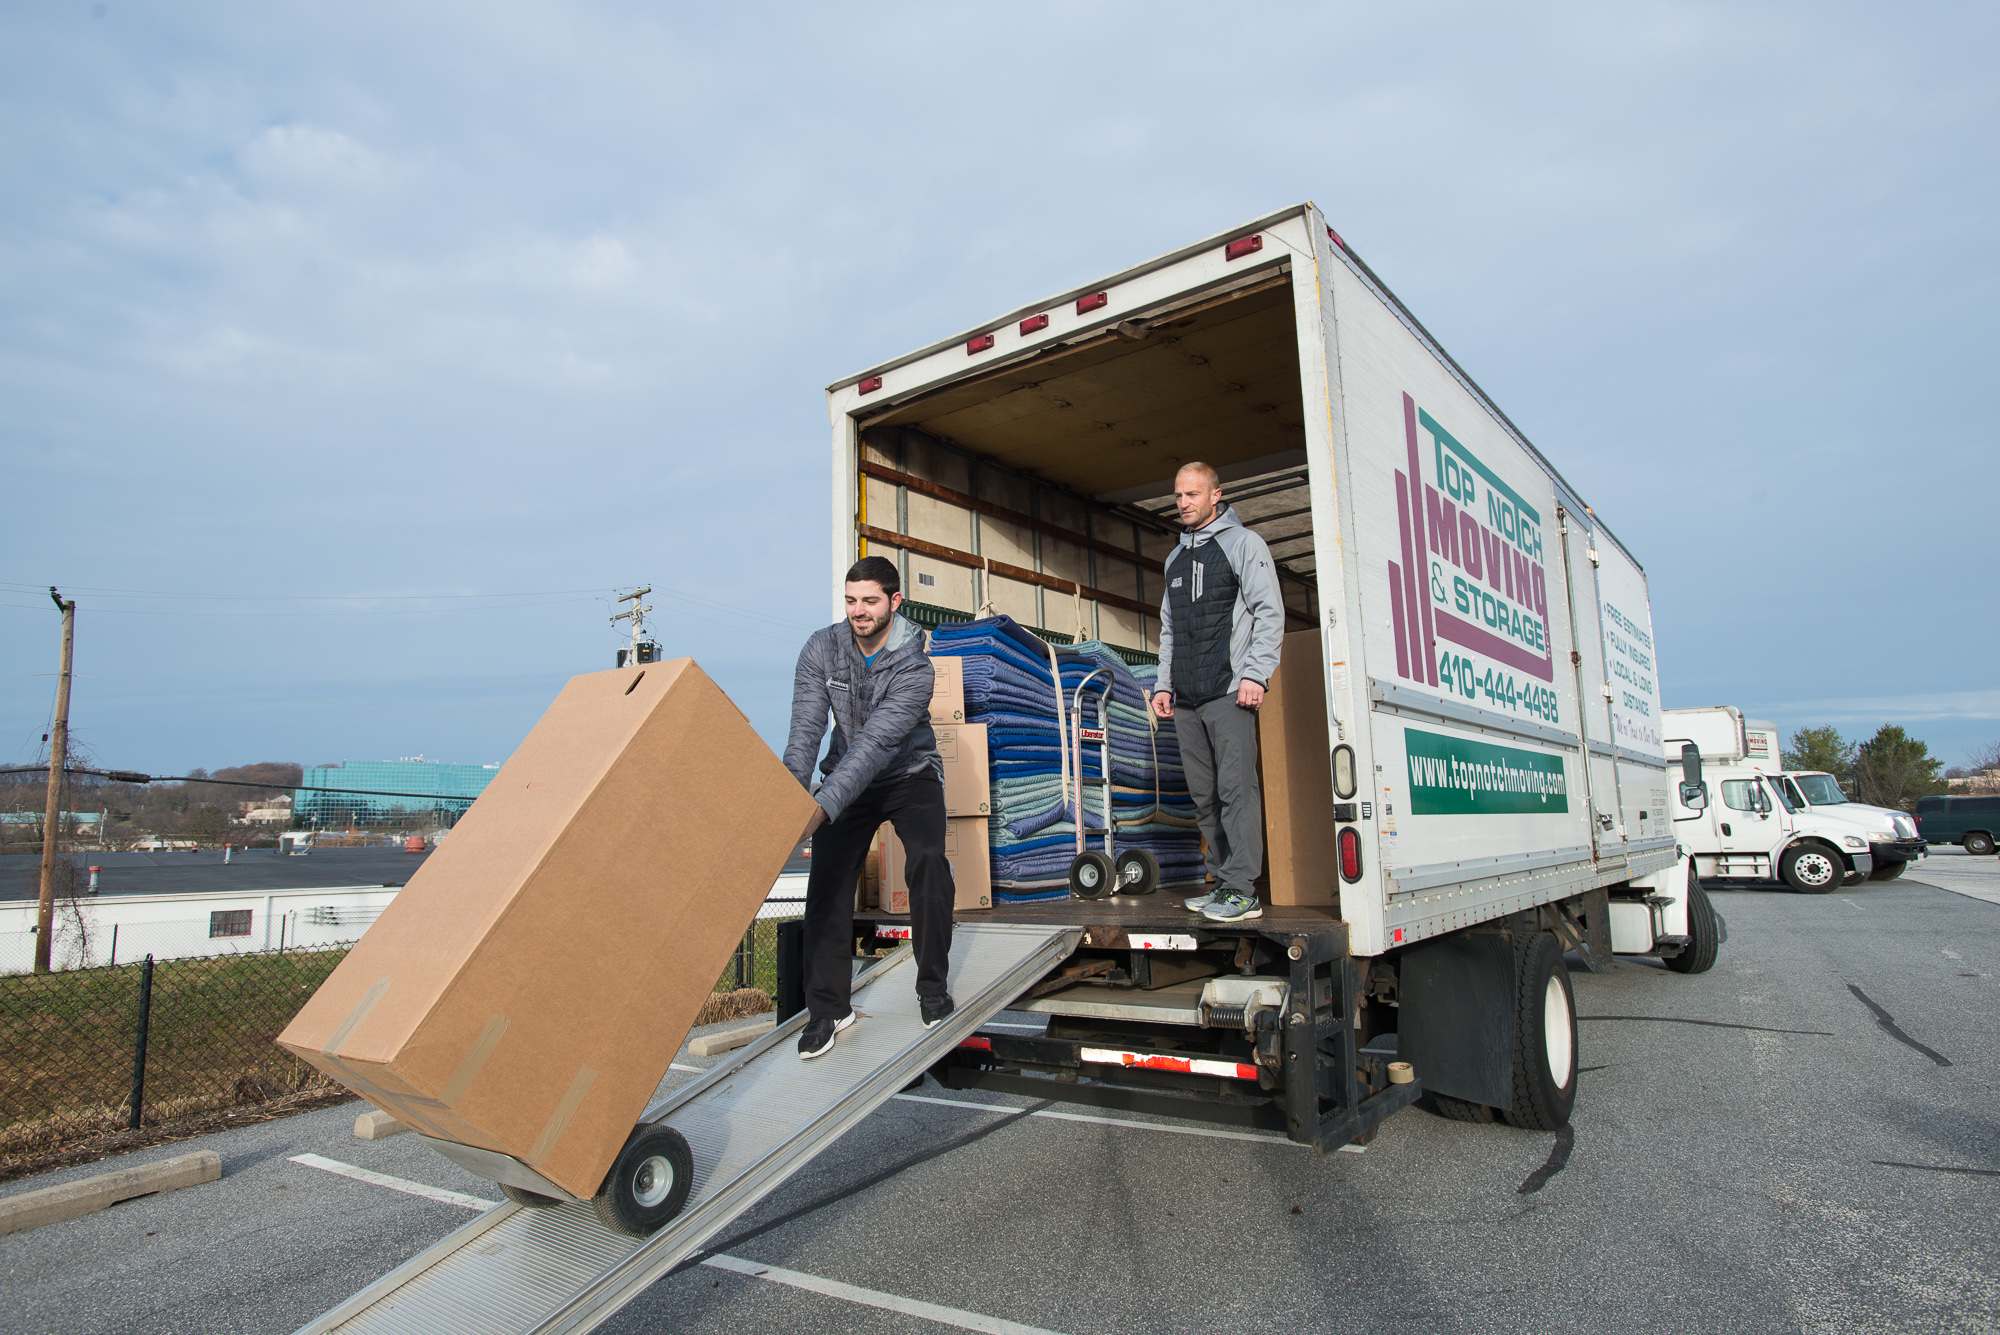 Towson movers, moving and storage, residential and commercial